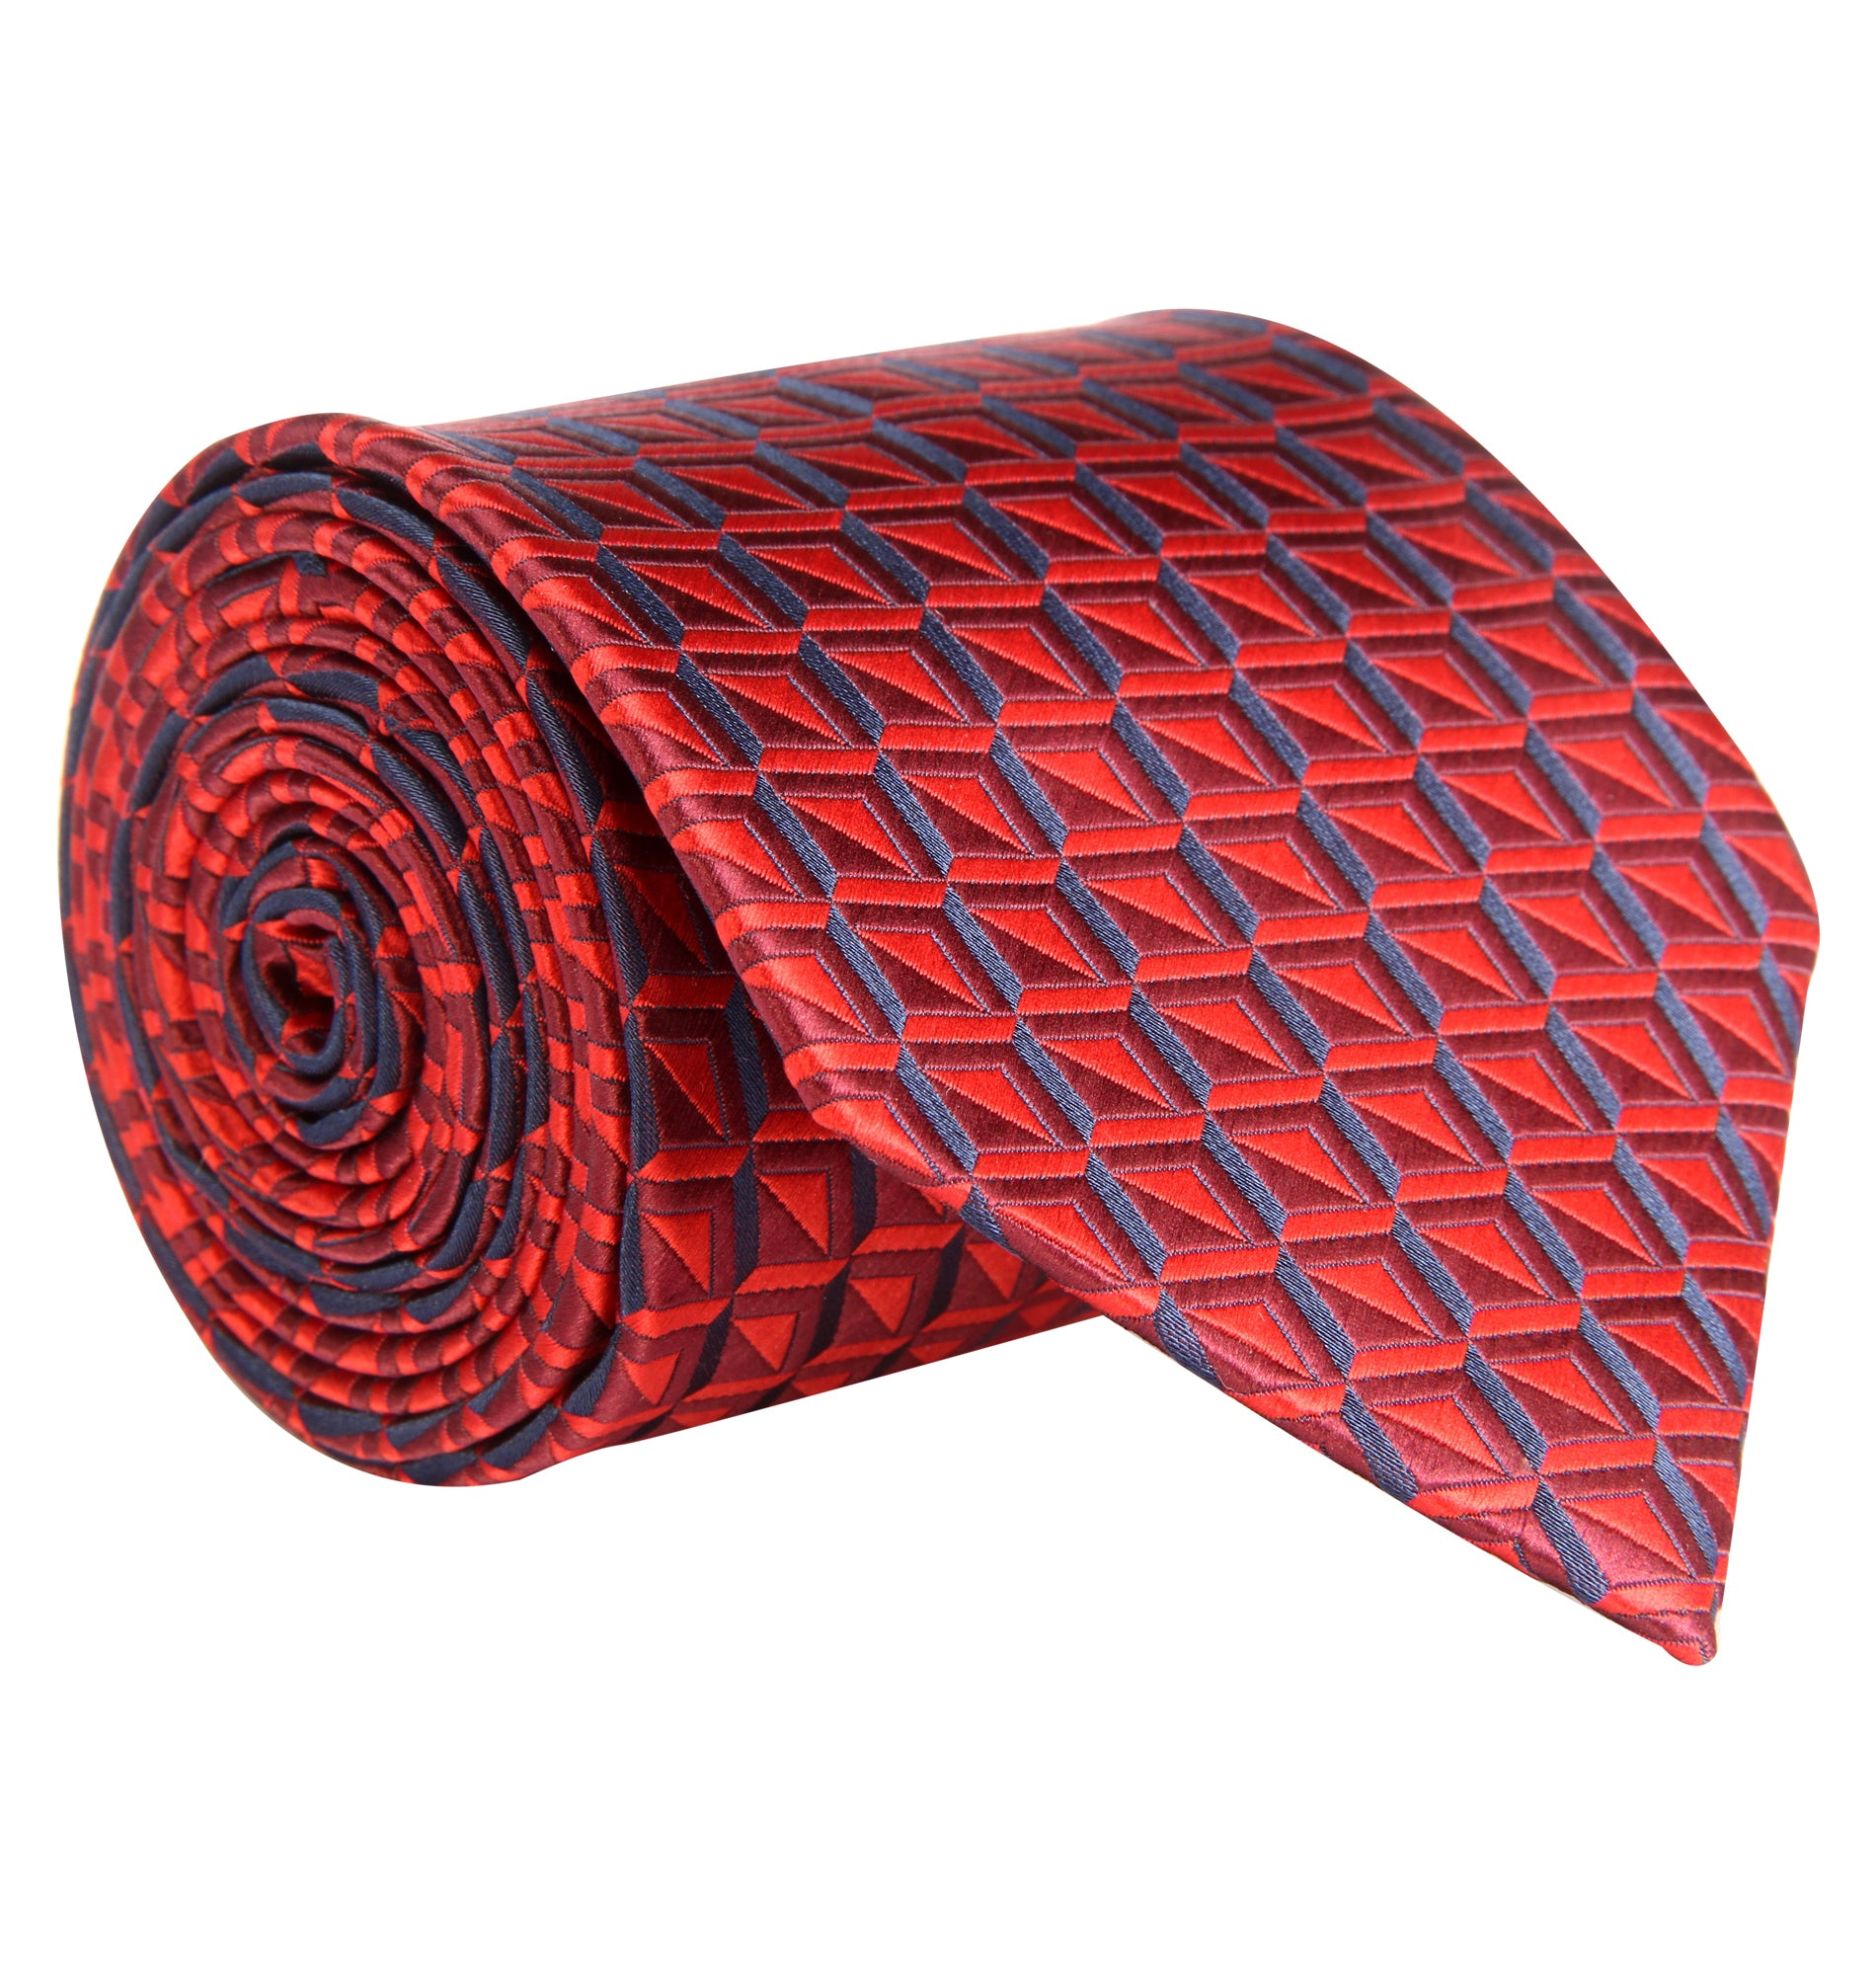 Zido Tie for Men TJQ026